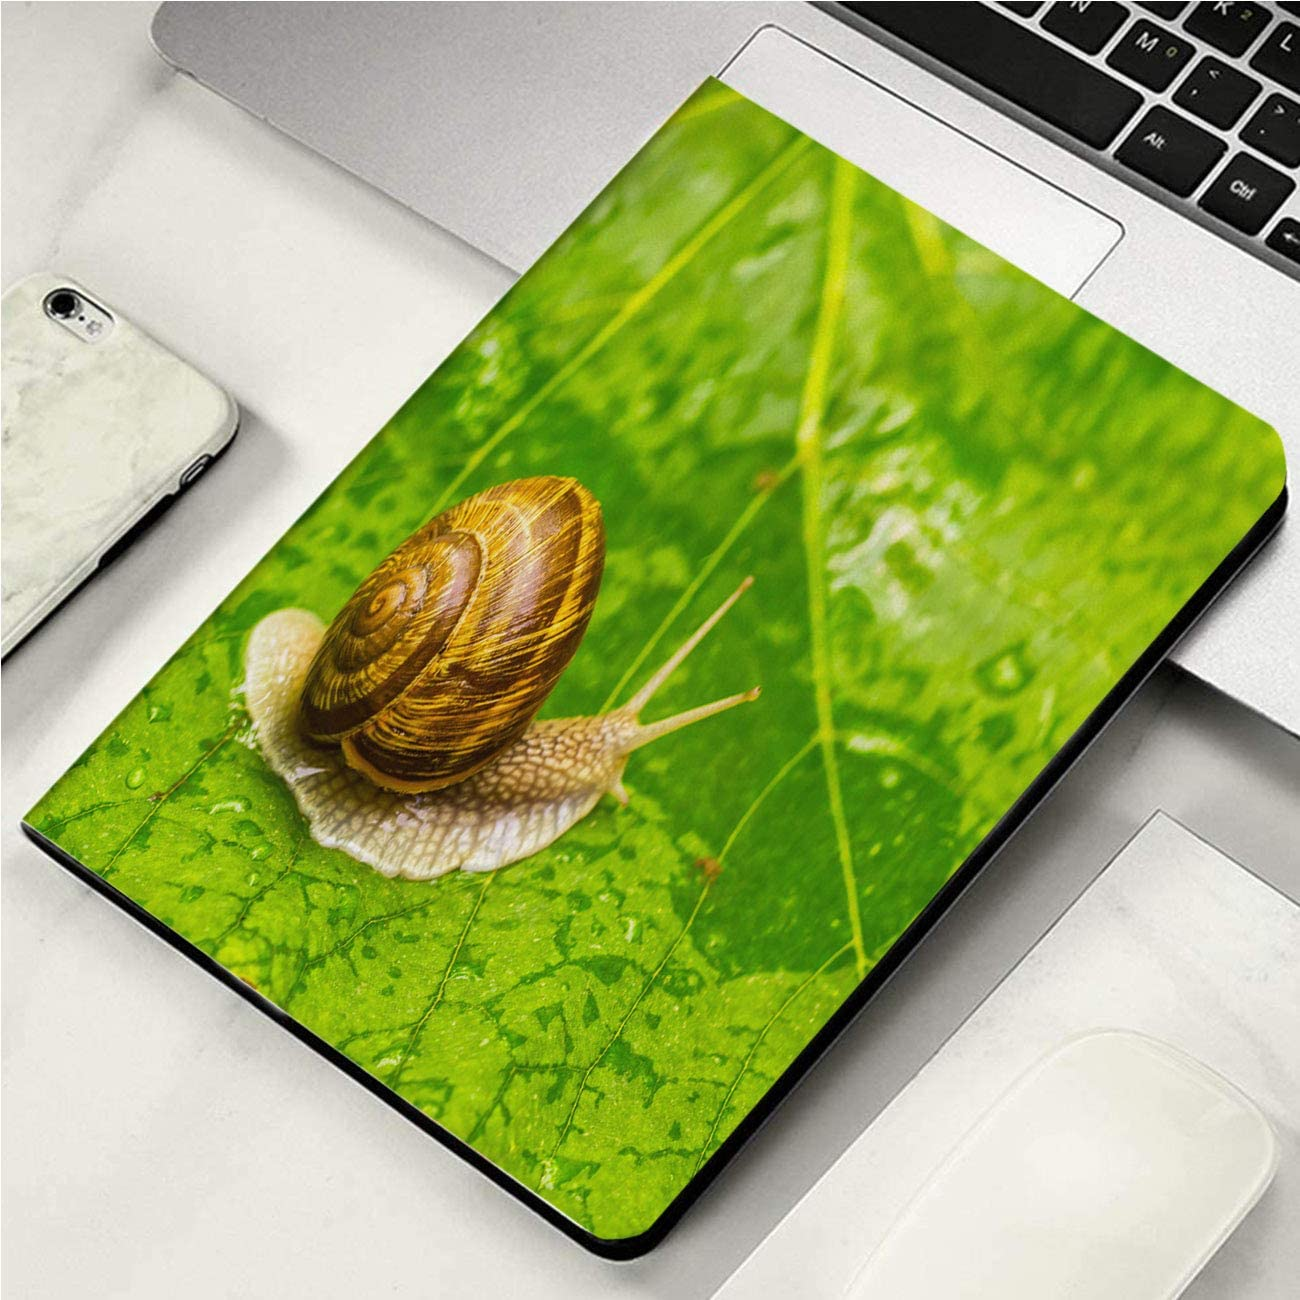 "Case for New ipad 2019 Case,Snail On Green Leaf,Microfiber Lining Auto Sleep/Wake Up Smart Cover for IPad 10.2"" Case"